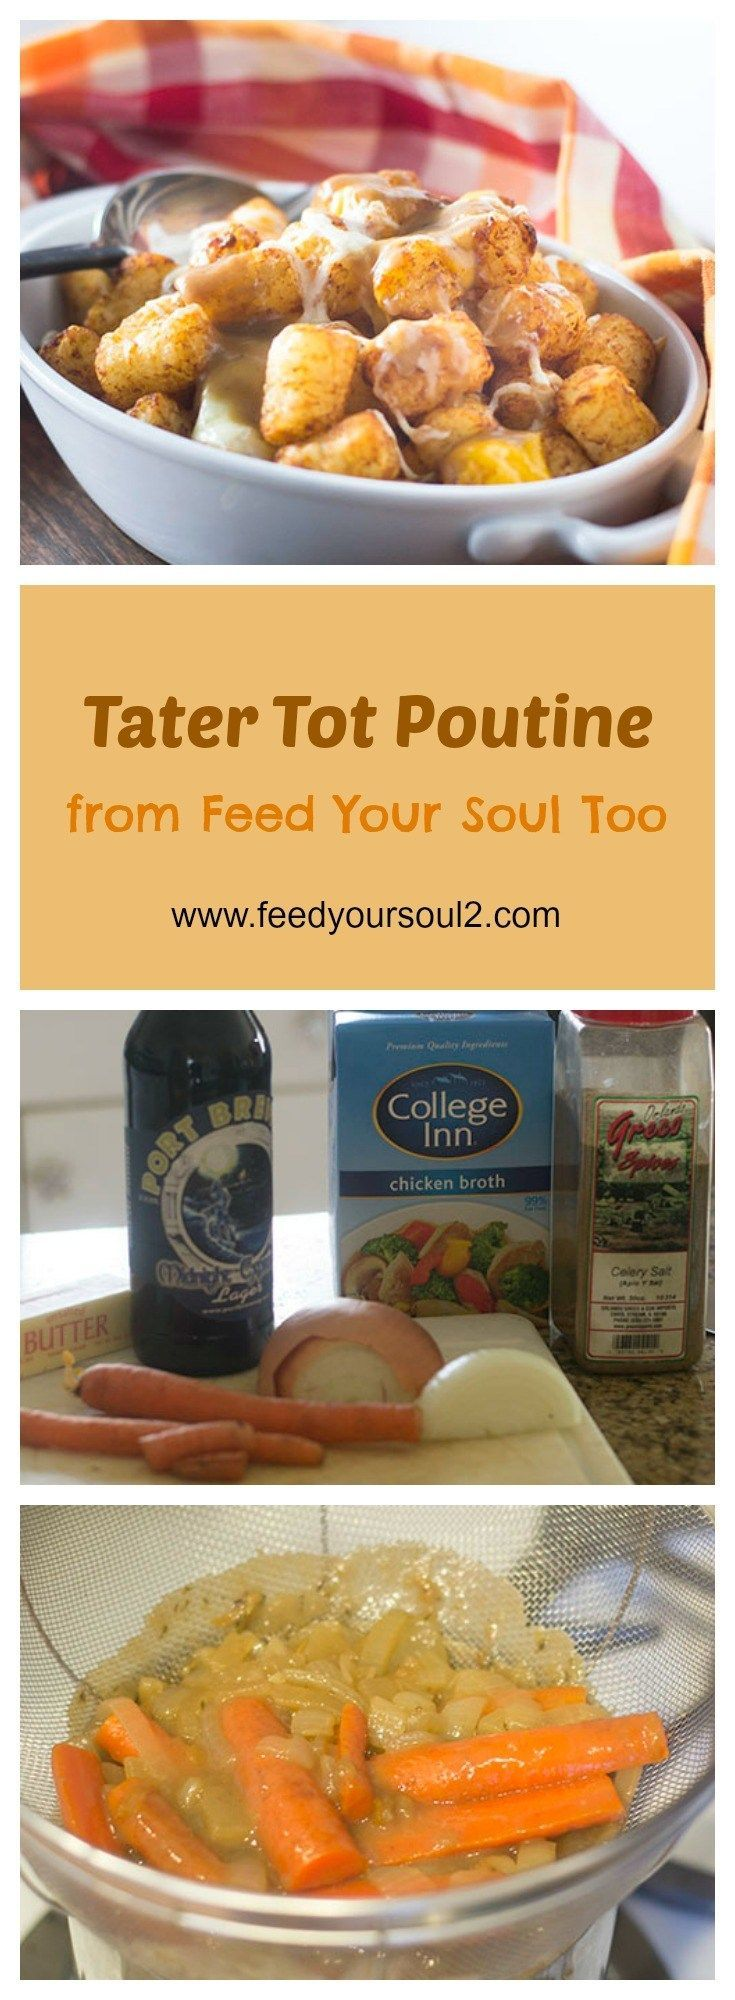 Tater Tot Poutine from Feed Your Soul Too